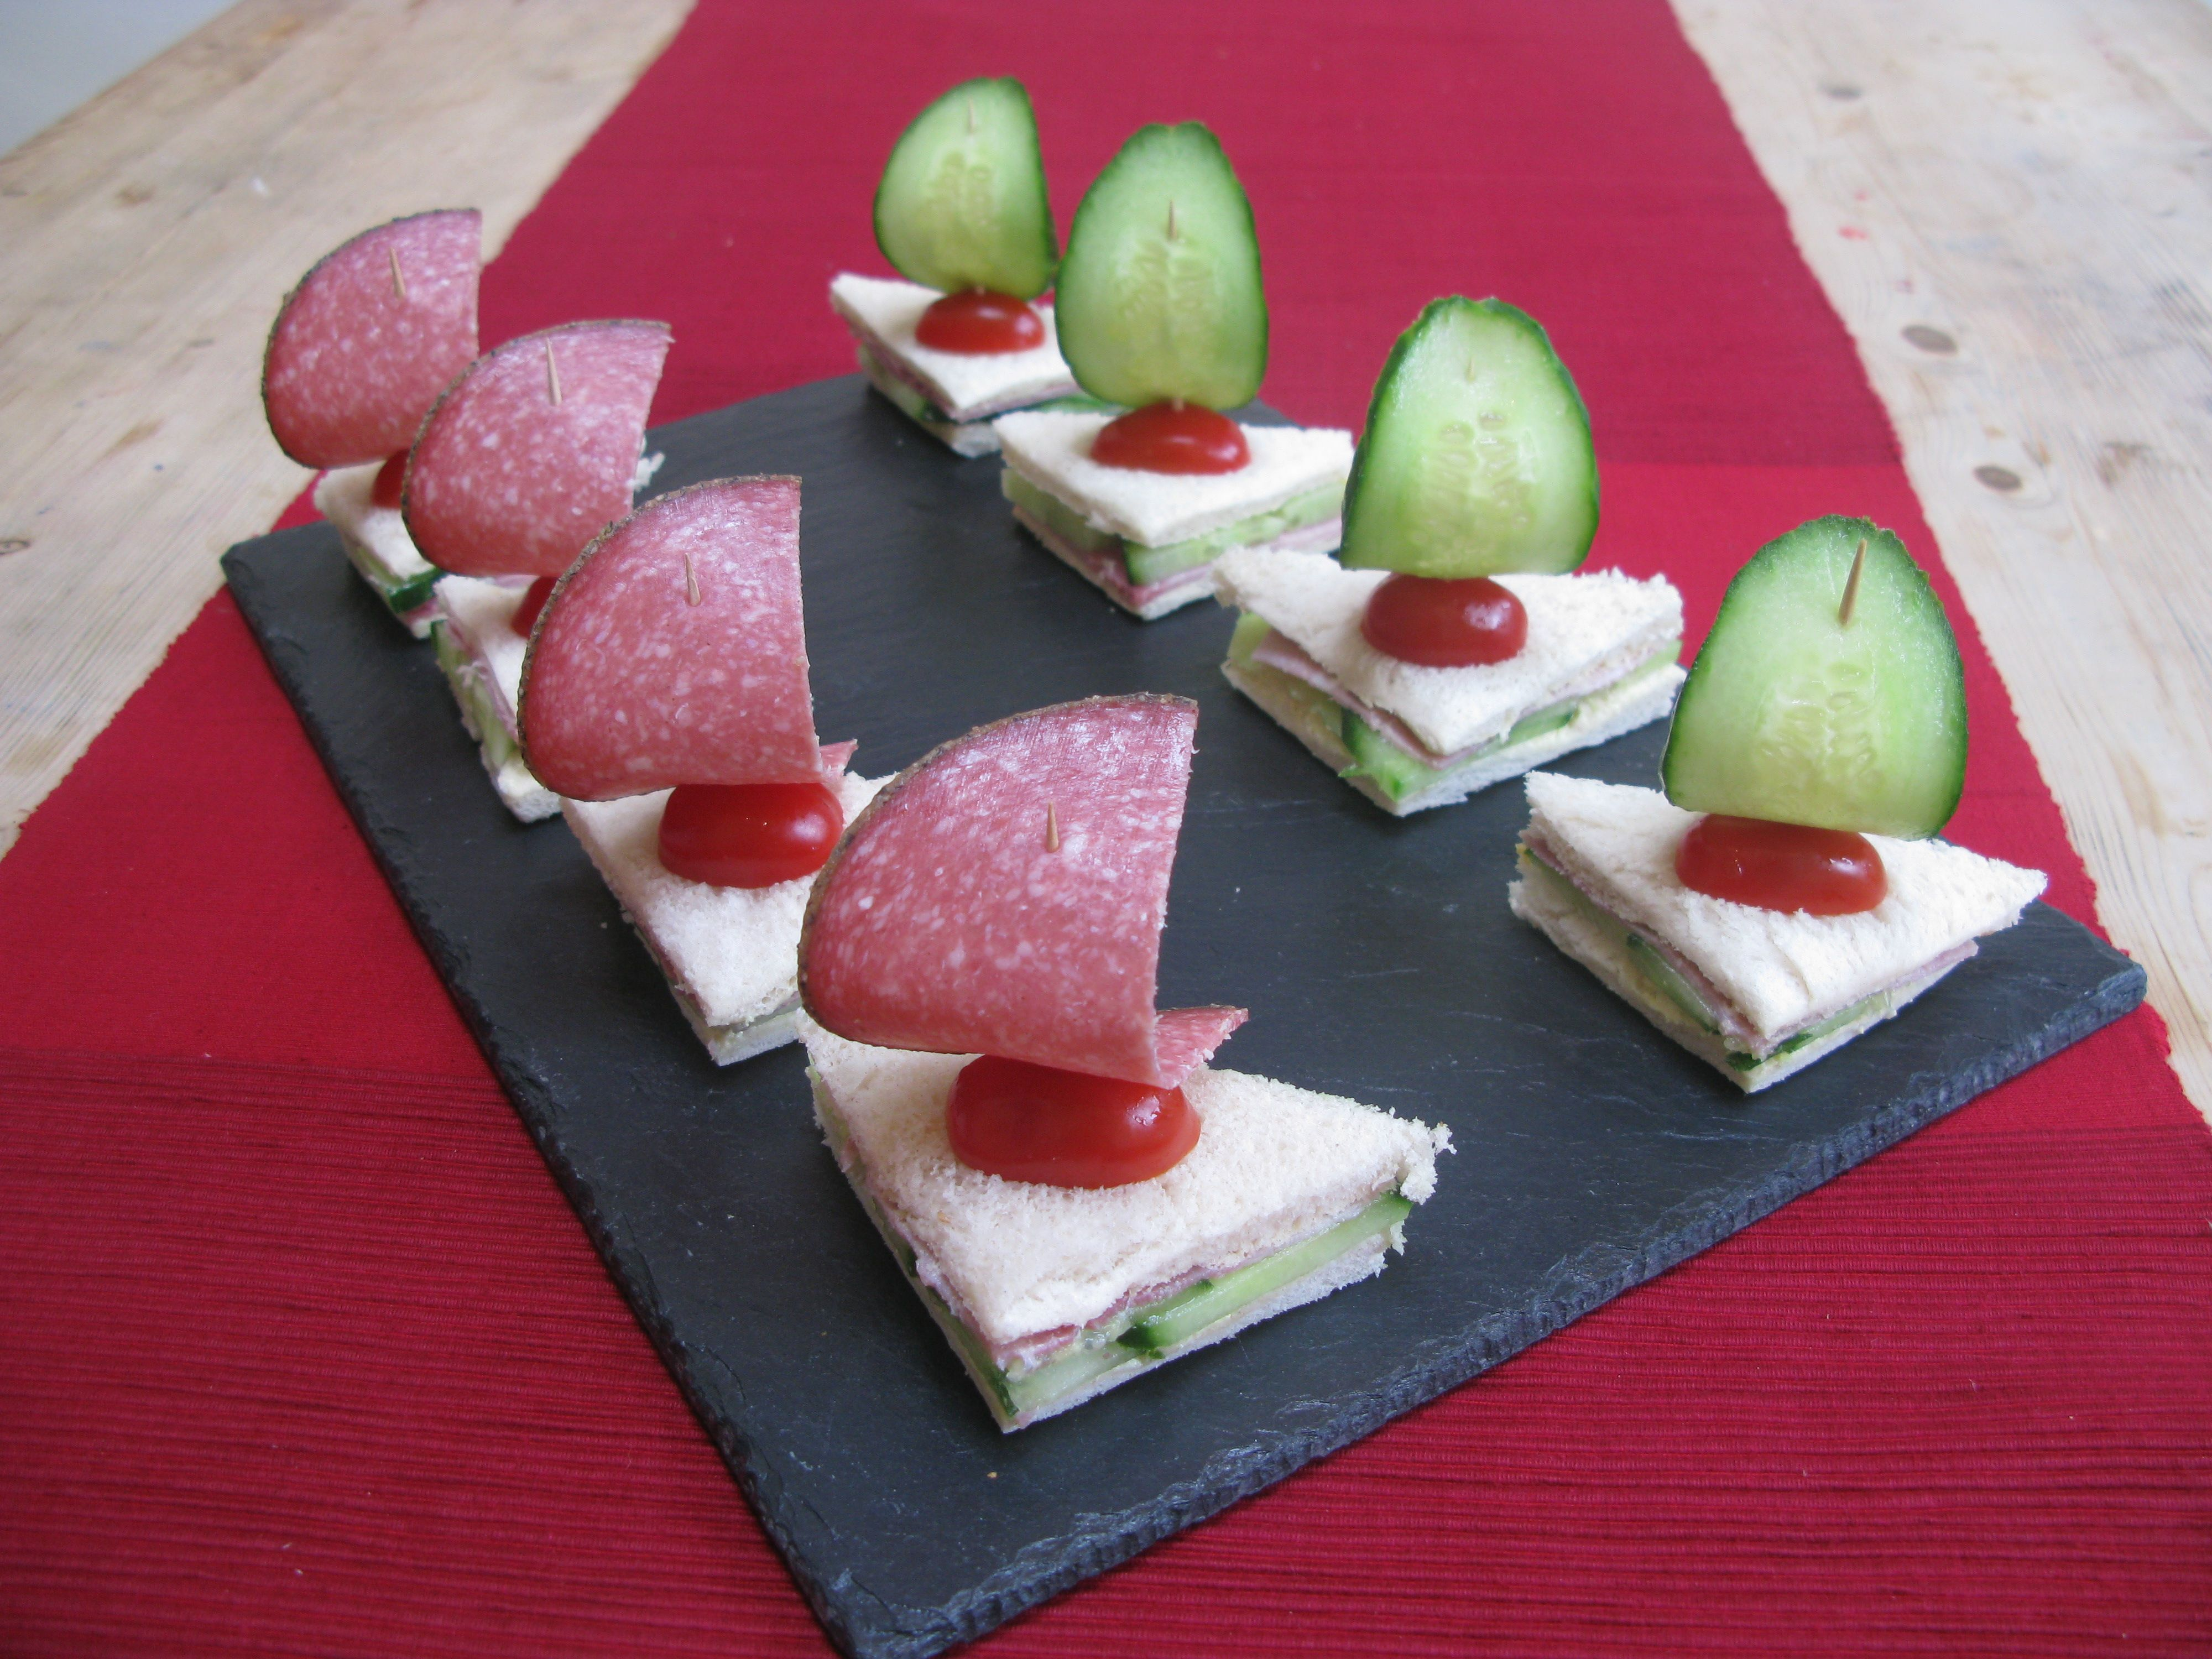 Childrens Party Food Ideas: Sandwich Boats